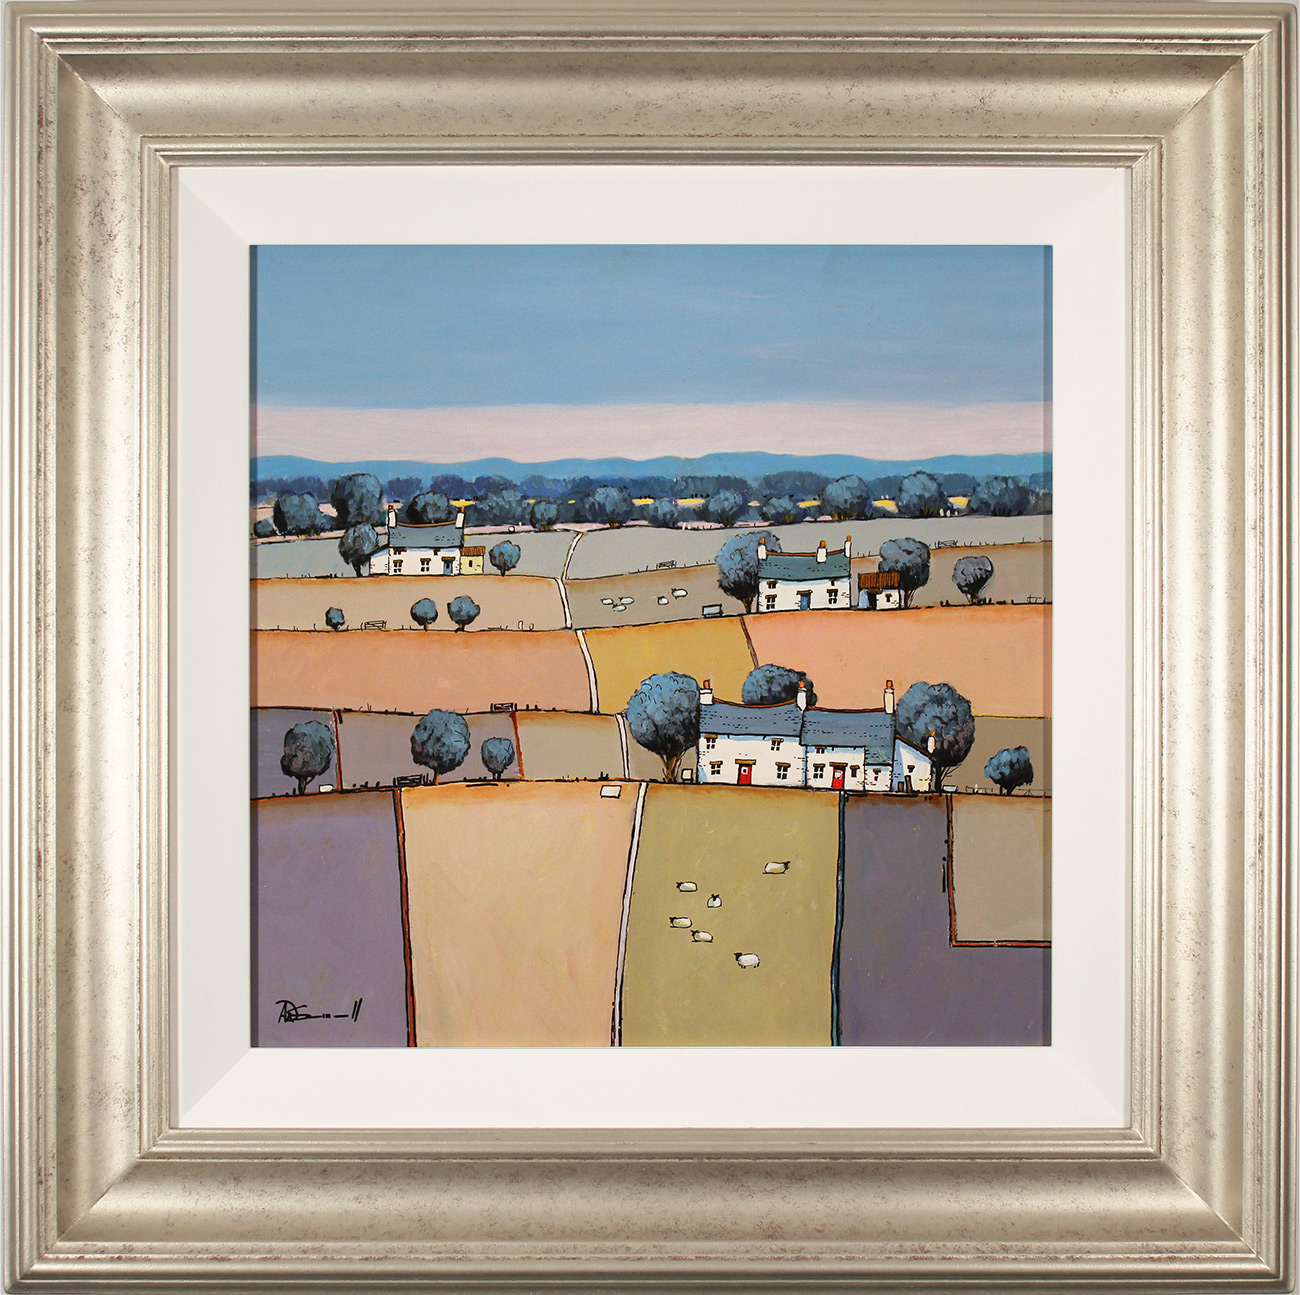 Alan Smith, Original oil painting on panel, Patchwork Fields, click to enlarge